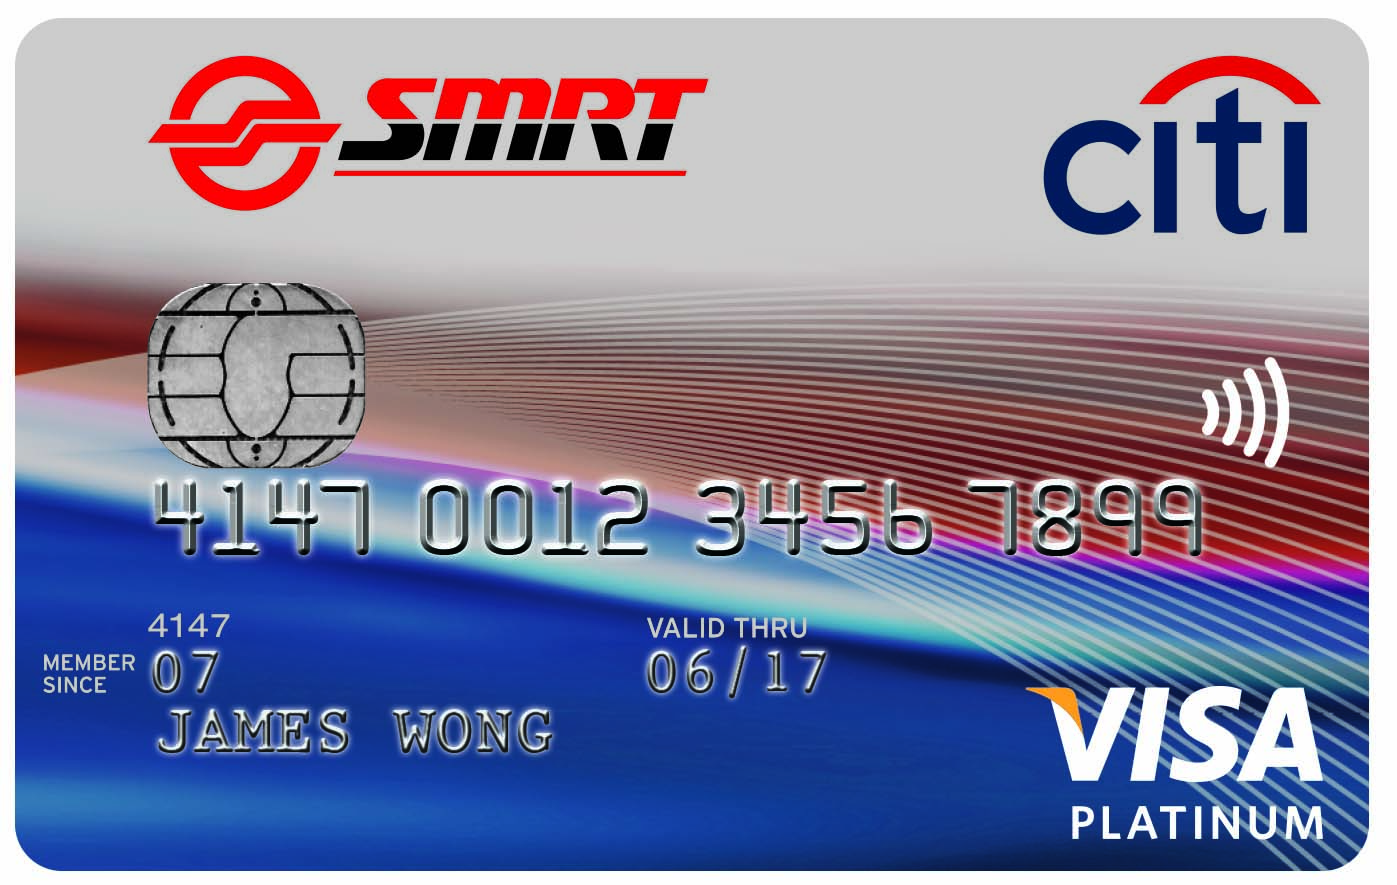 CitibankSMRTCards